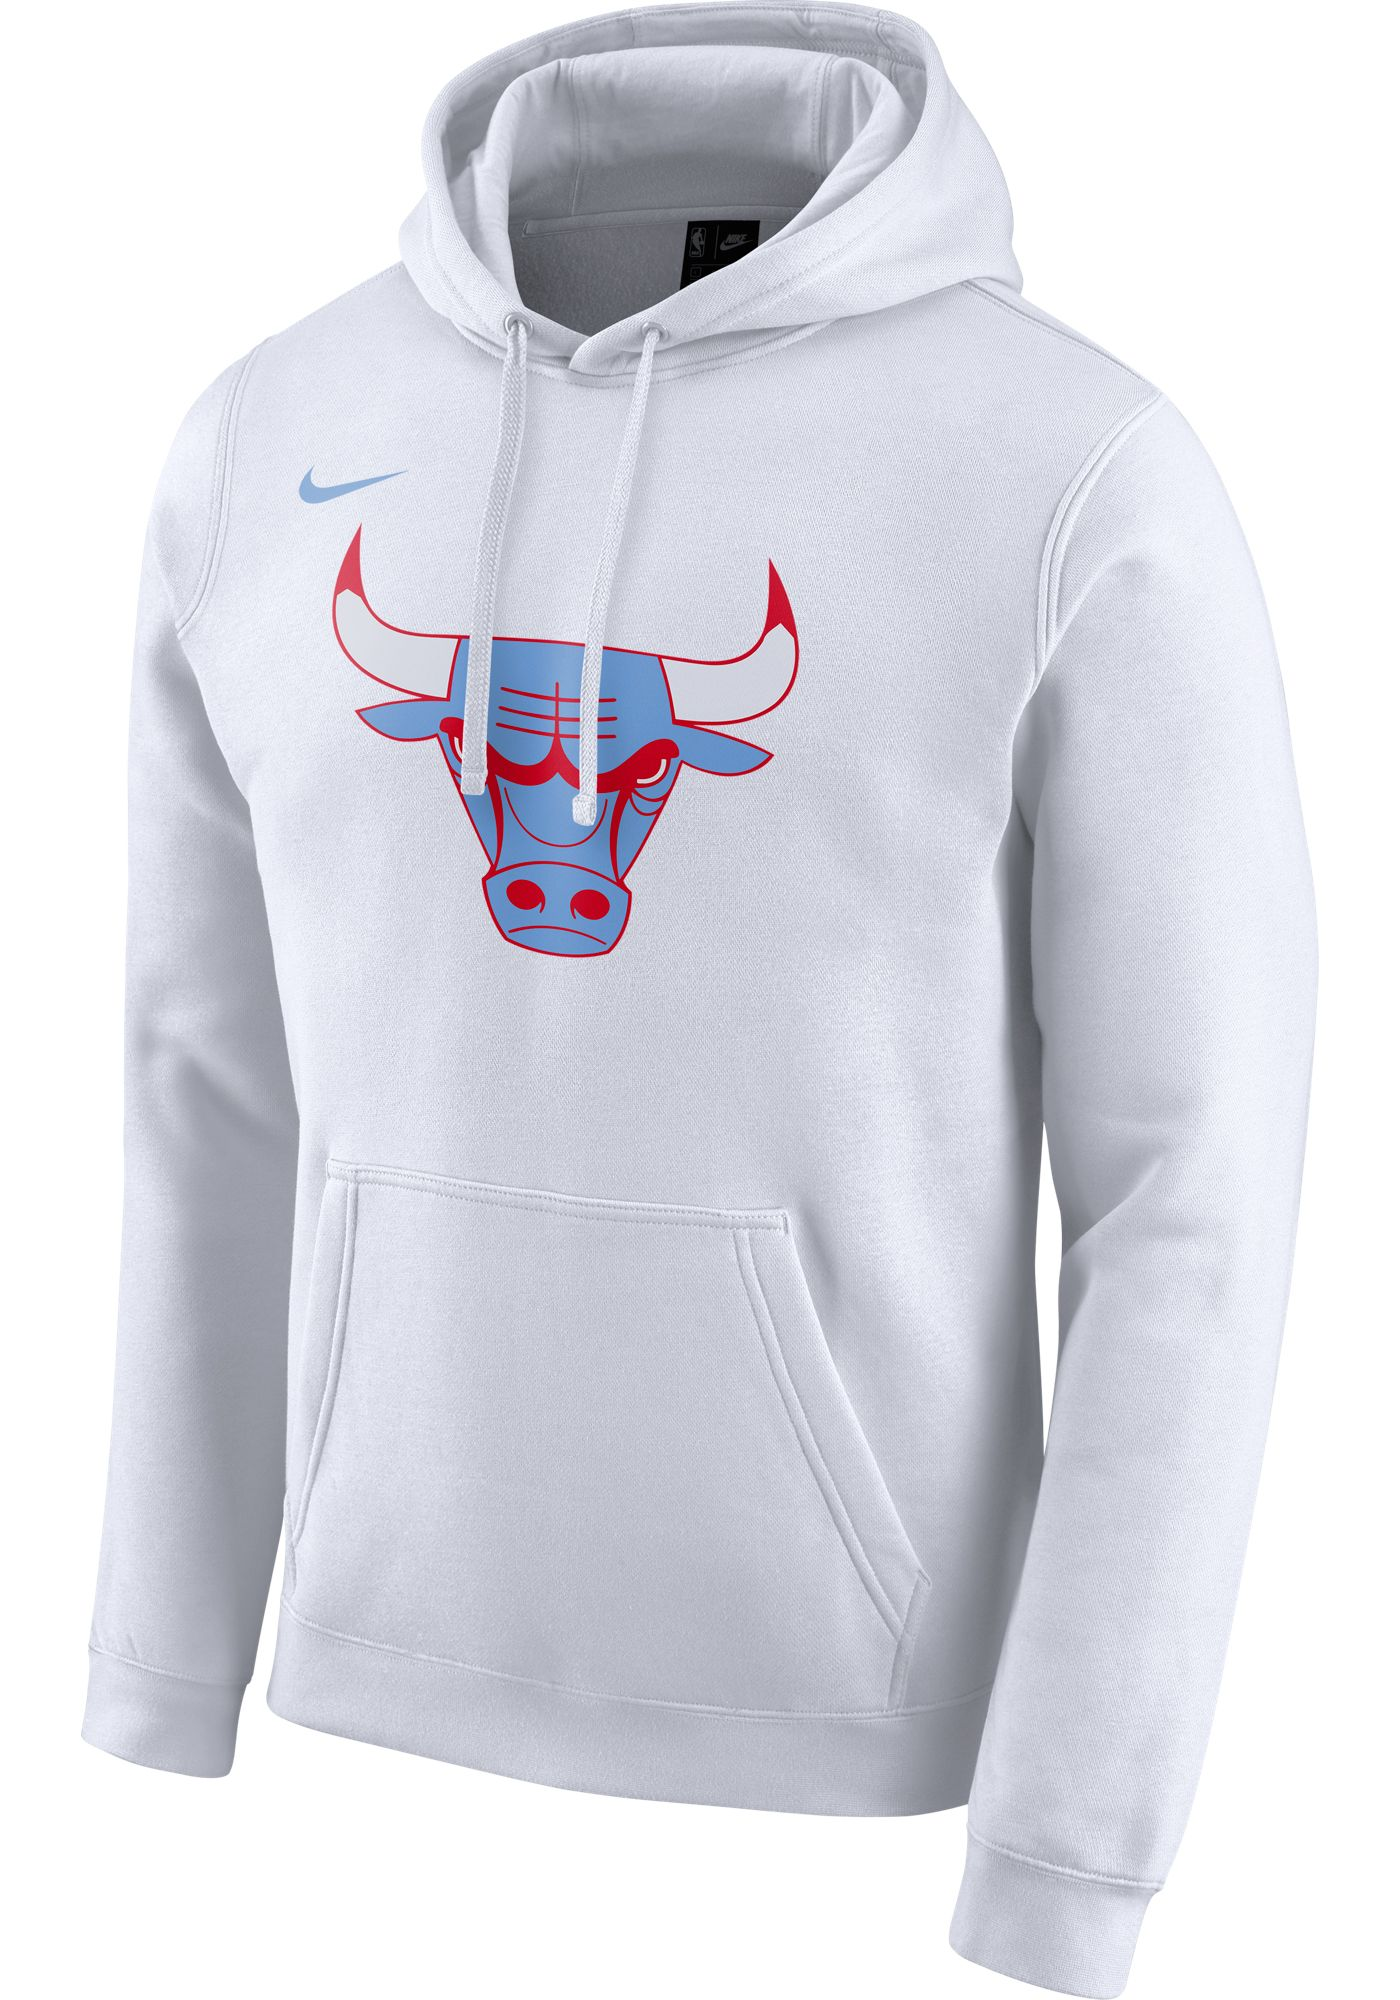 Nike Men's Chicago Bulls Dri-FIT City Edition Pullover Hoodie